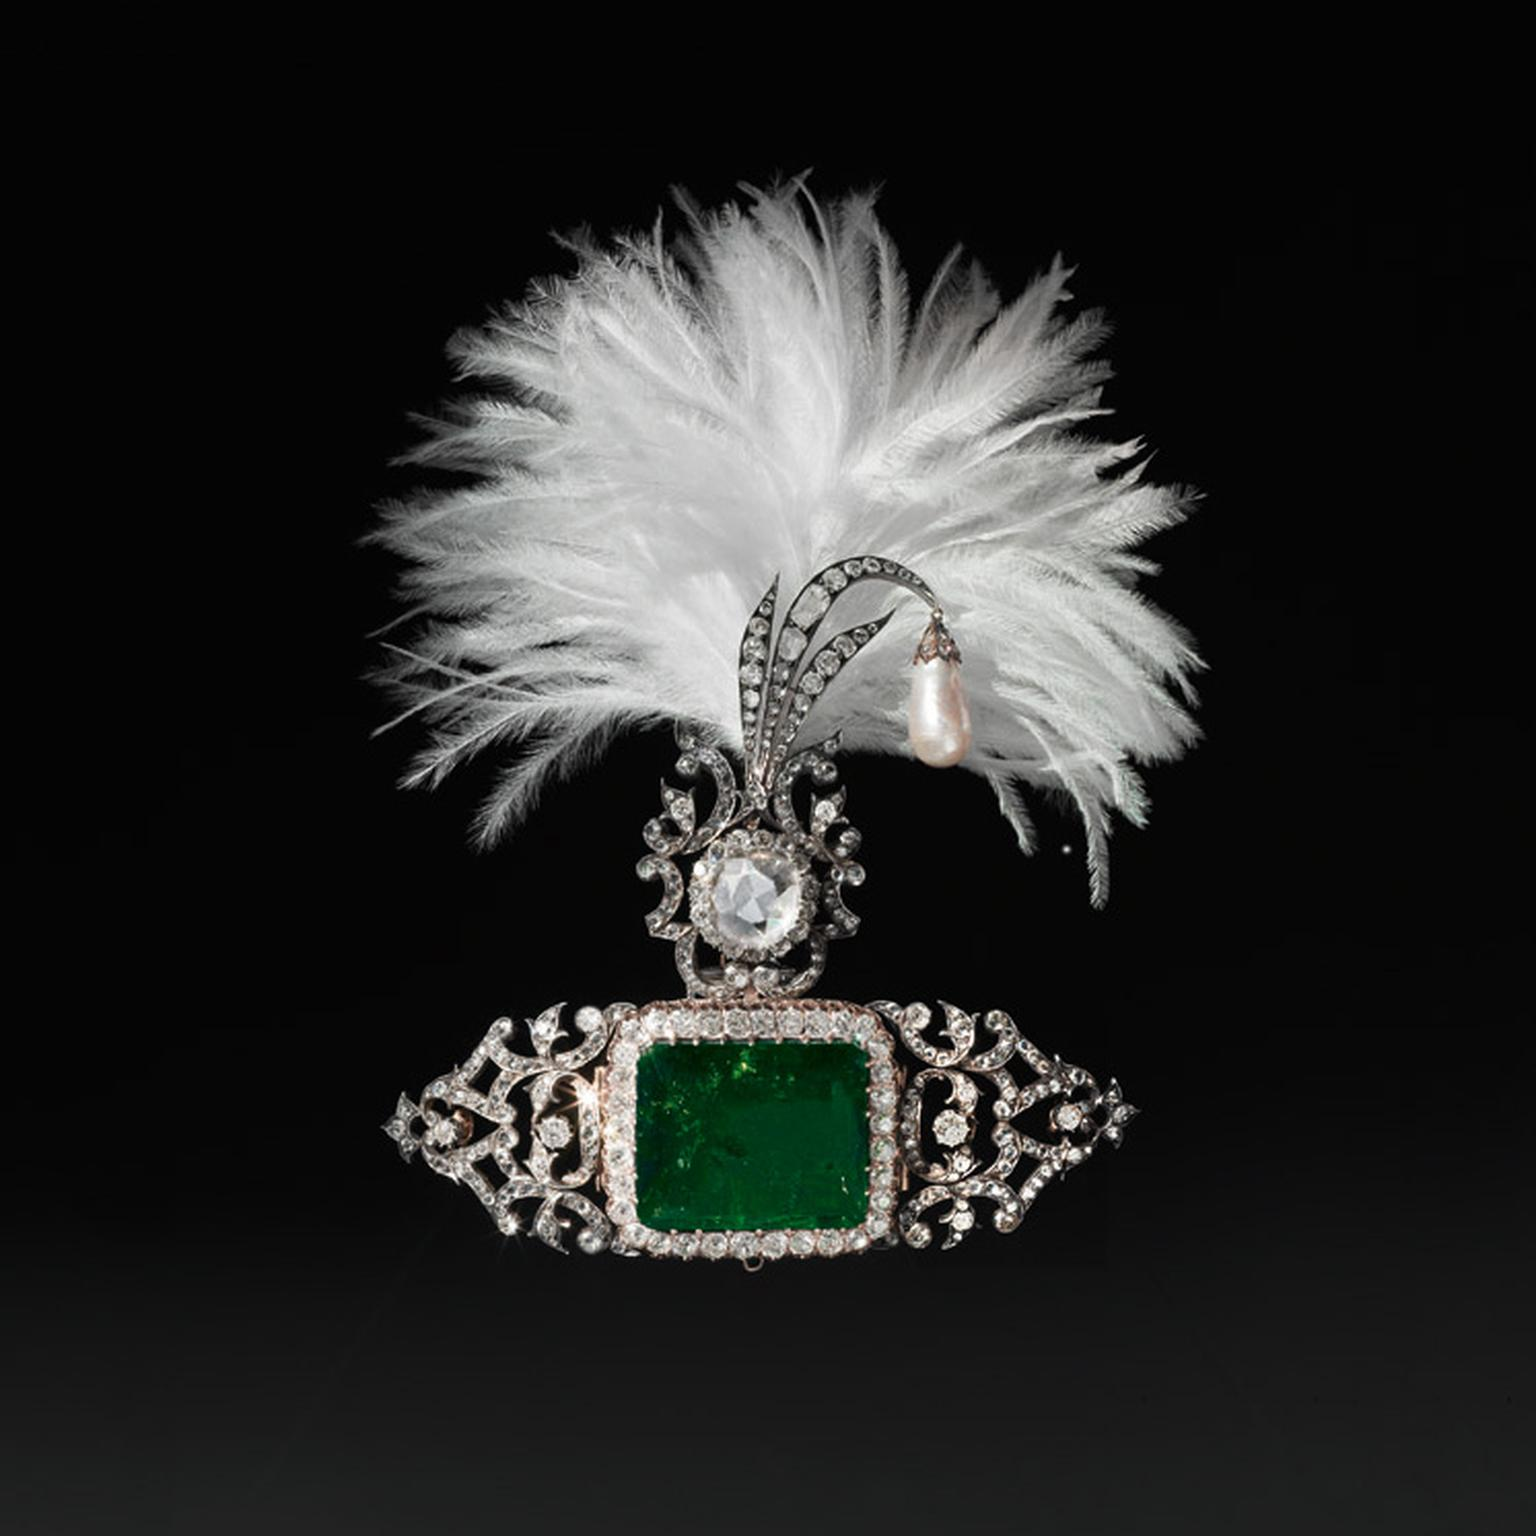 Turban ornament by Cartier